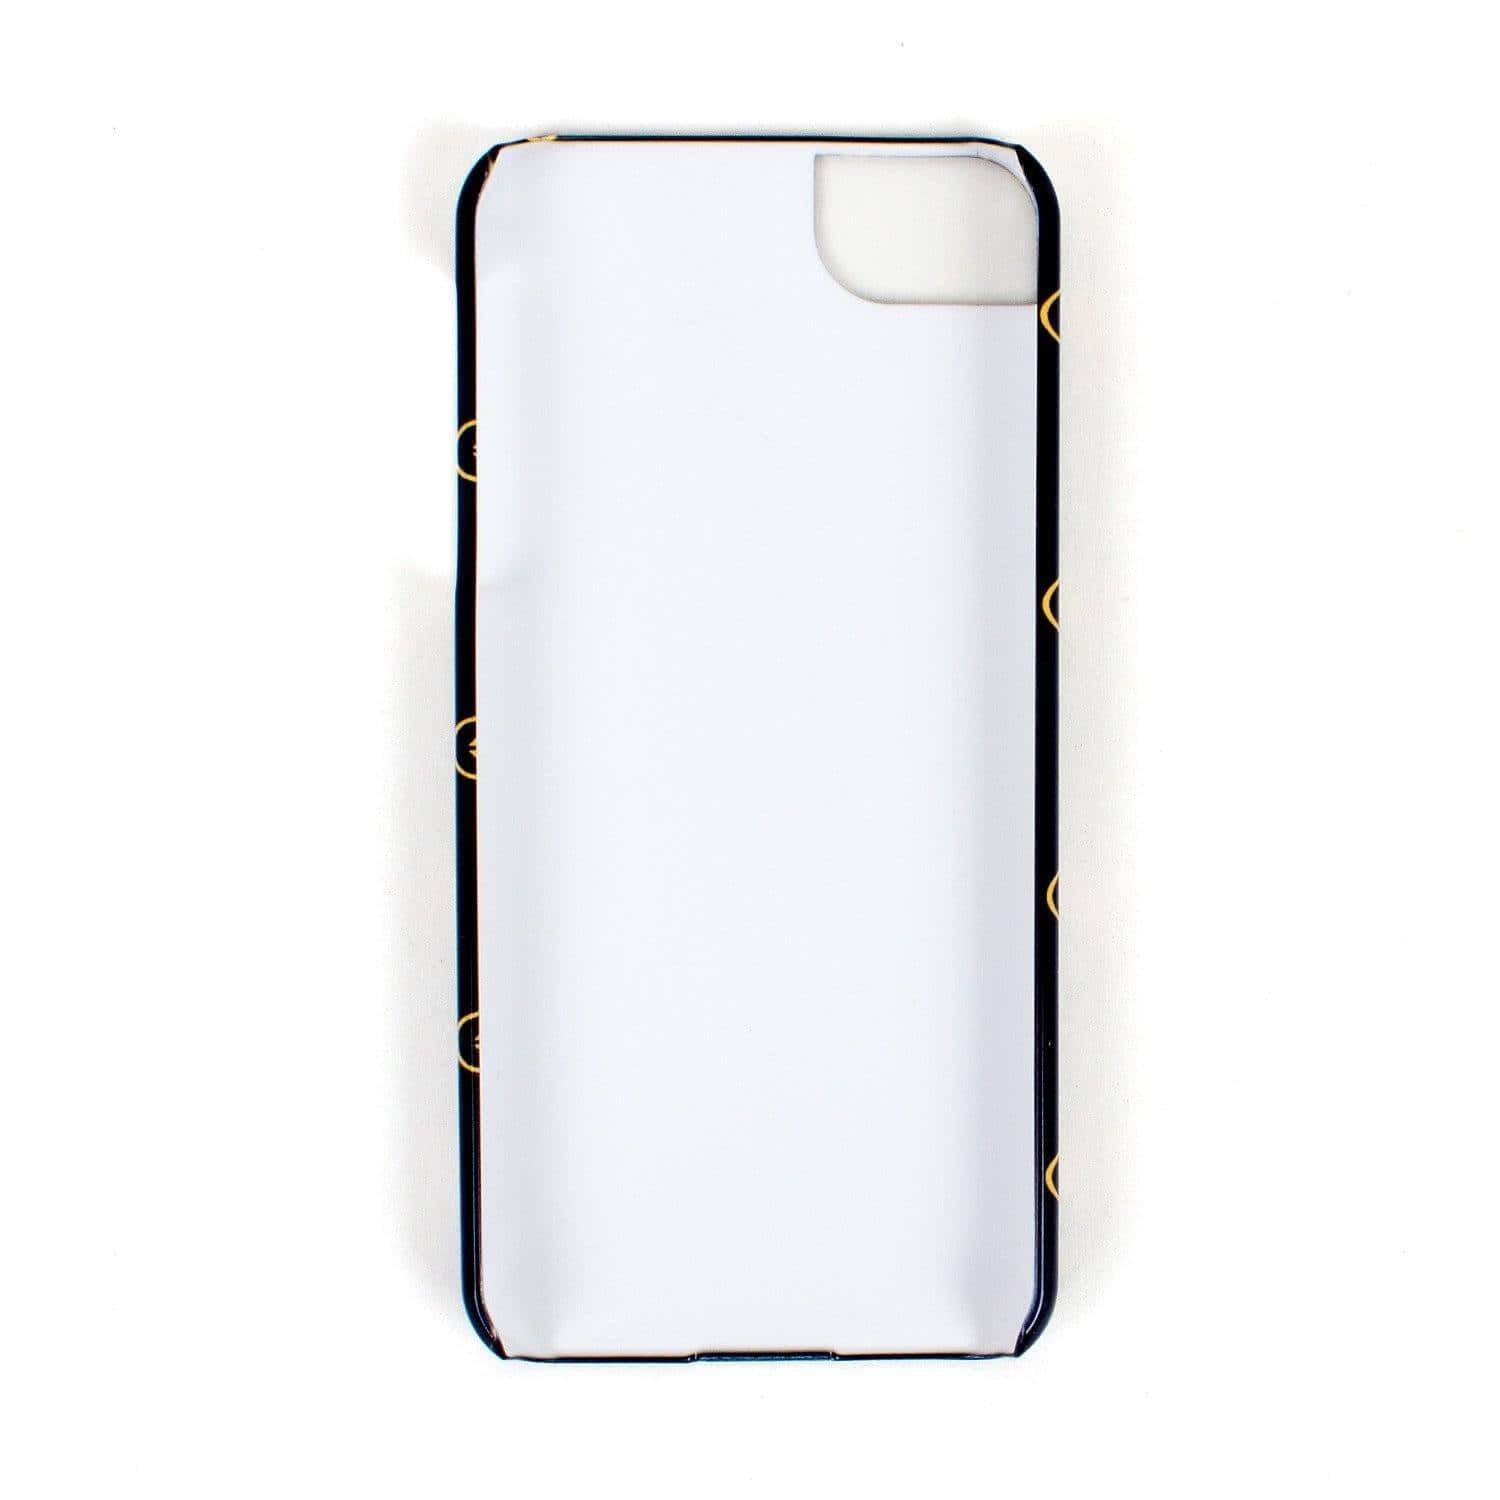 Tedashii 'Below Paradise' iPhone Case